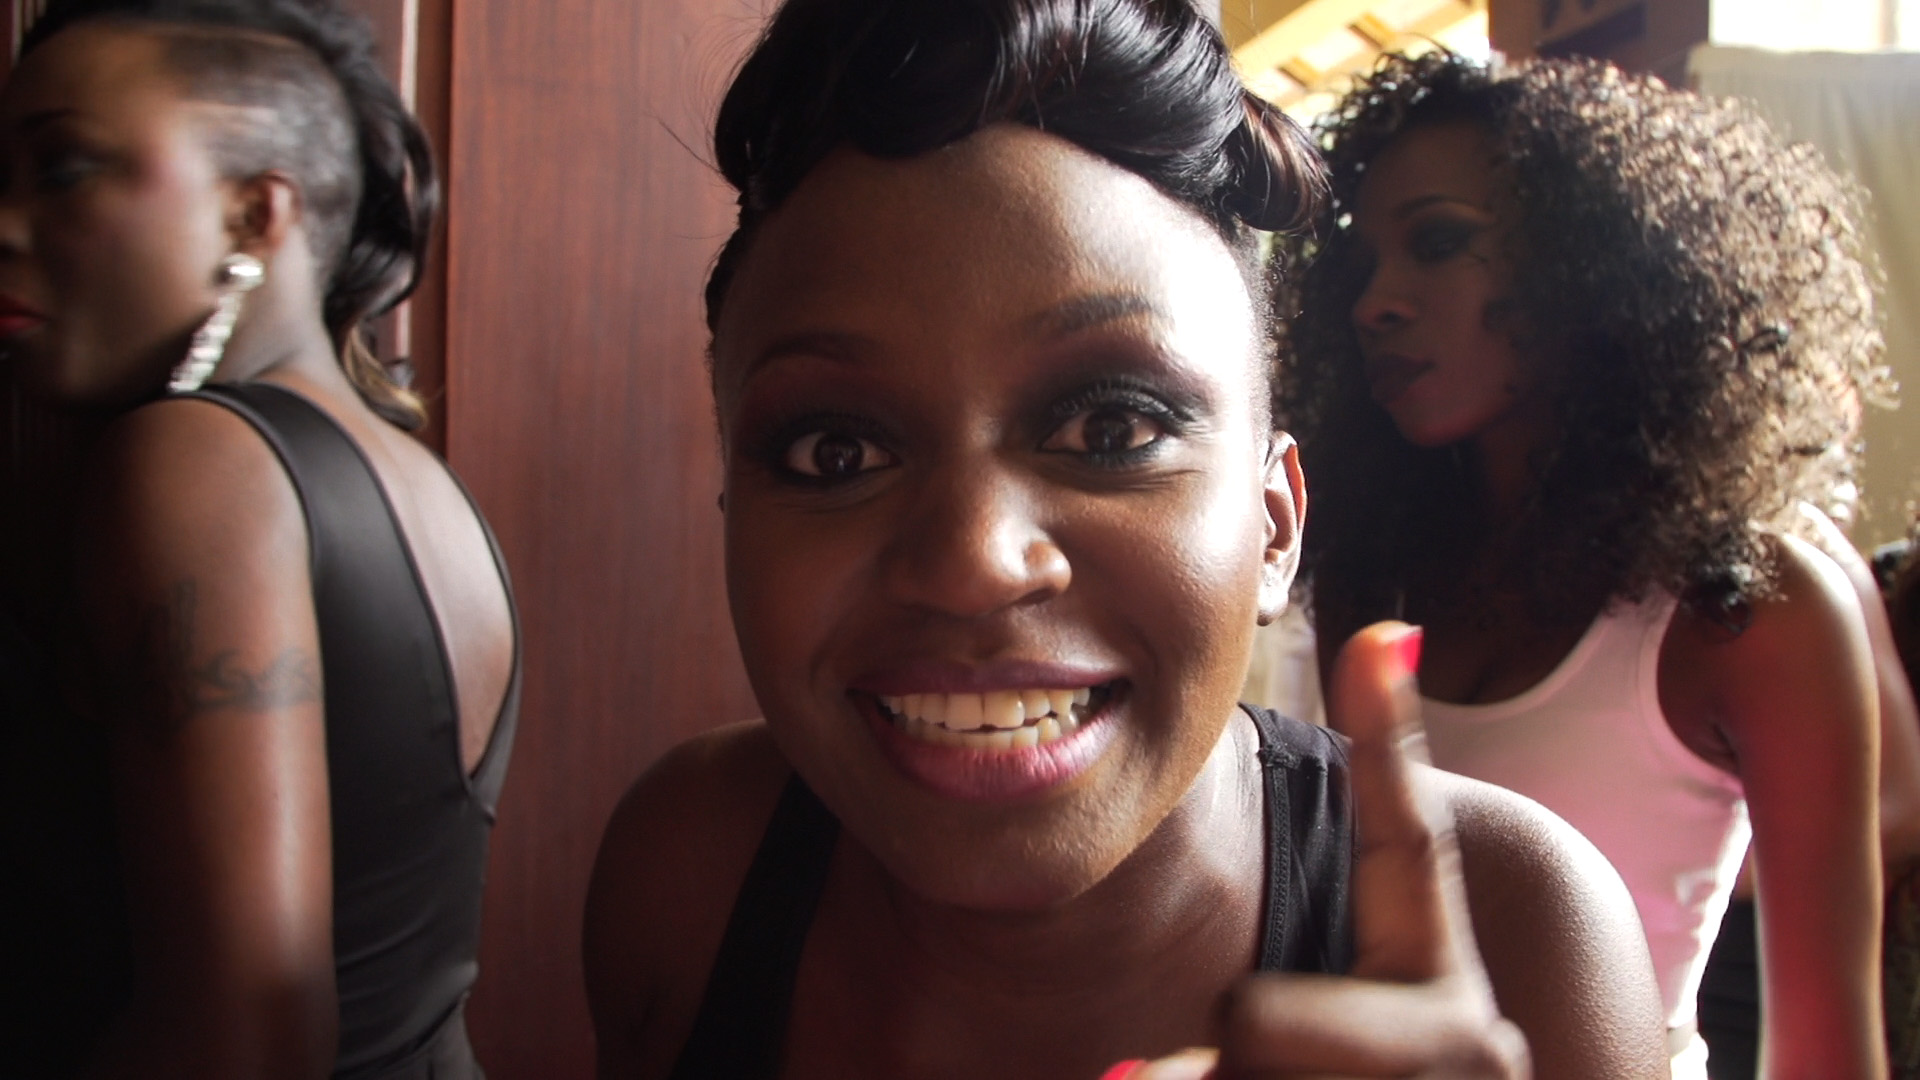 sandra suubi hints on album in interview us after trace sandra suubi hints of an album in interview after trace music star competition